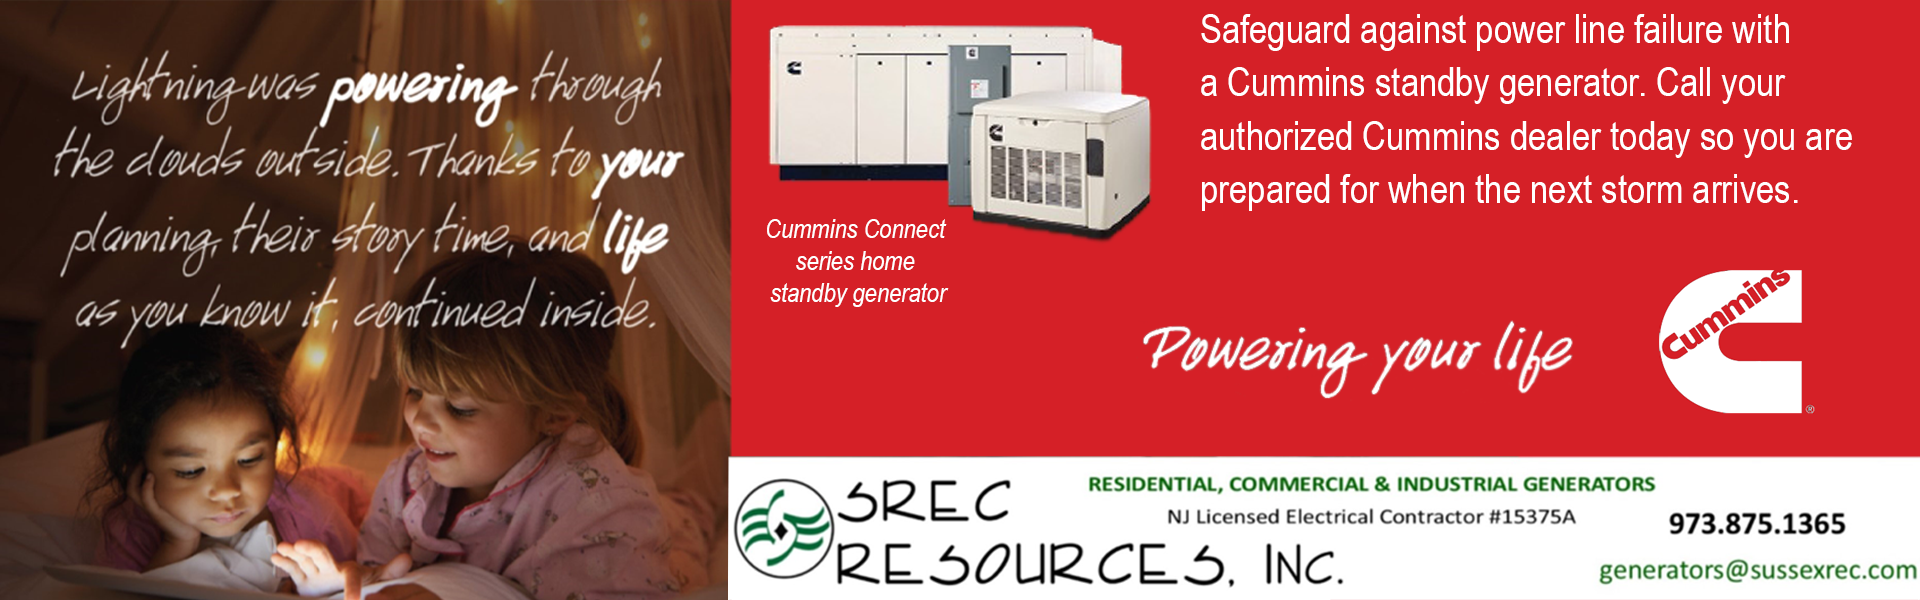 Cummins Generators - Installed by SREC Resources, NJ Licensed Elec. Contractor #15375A